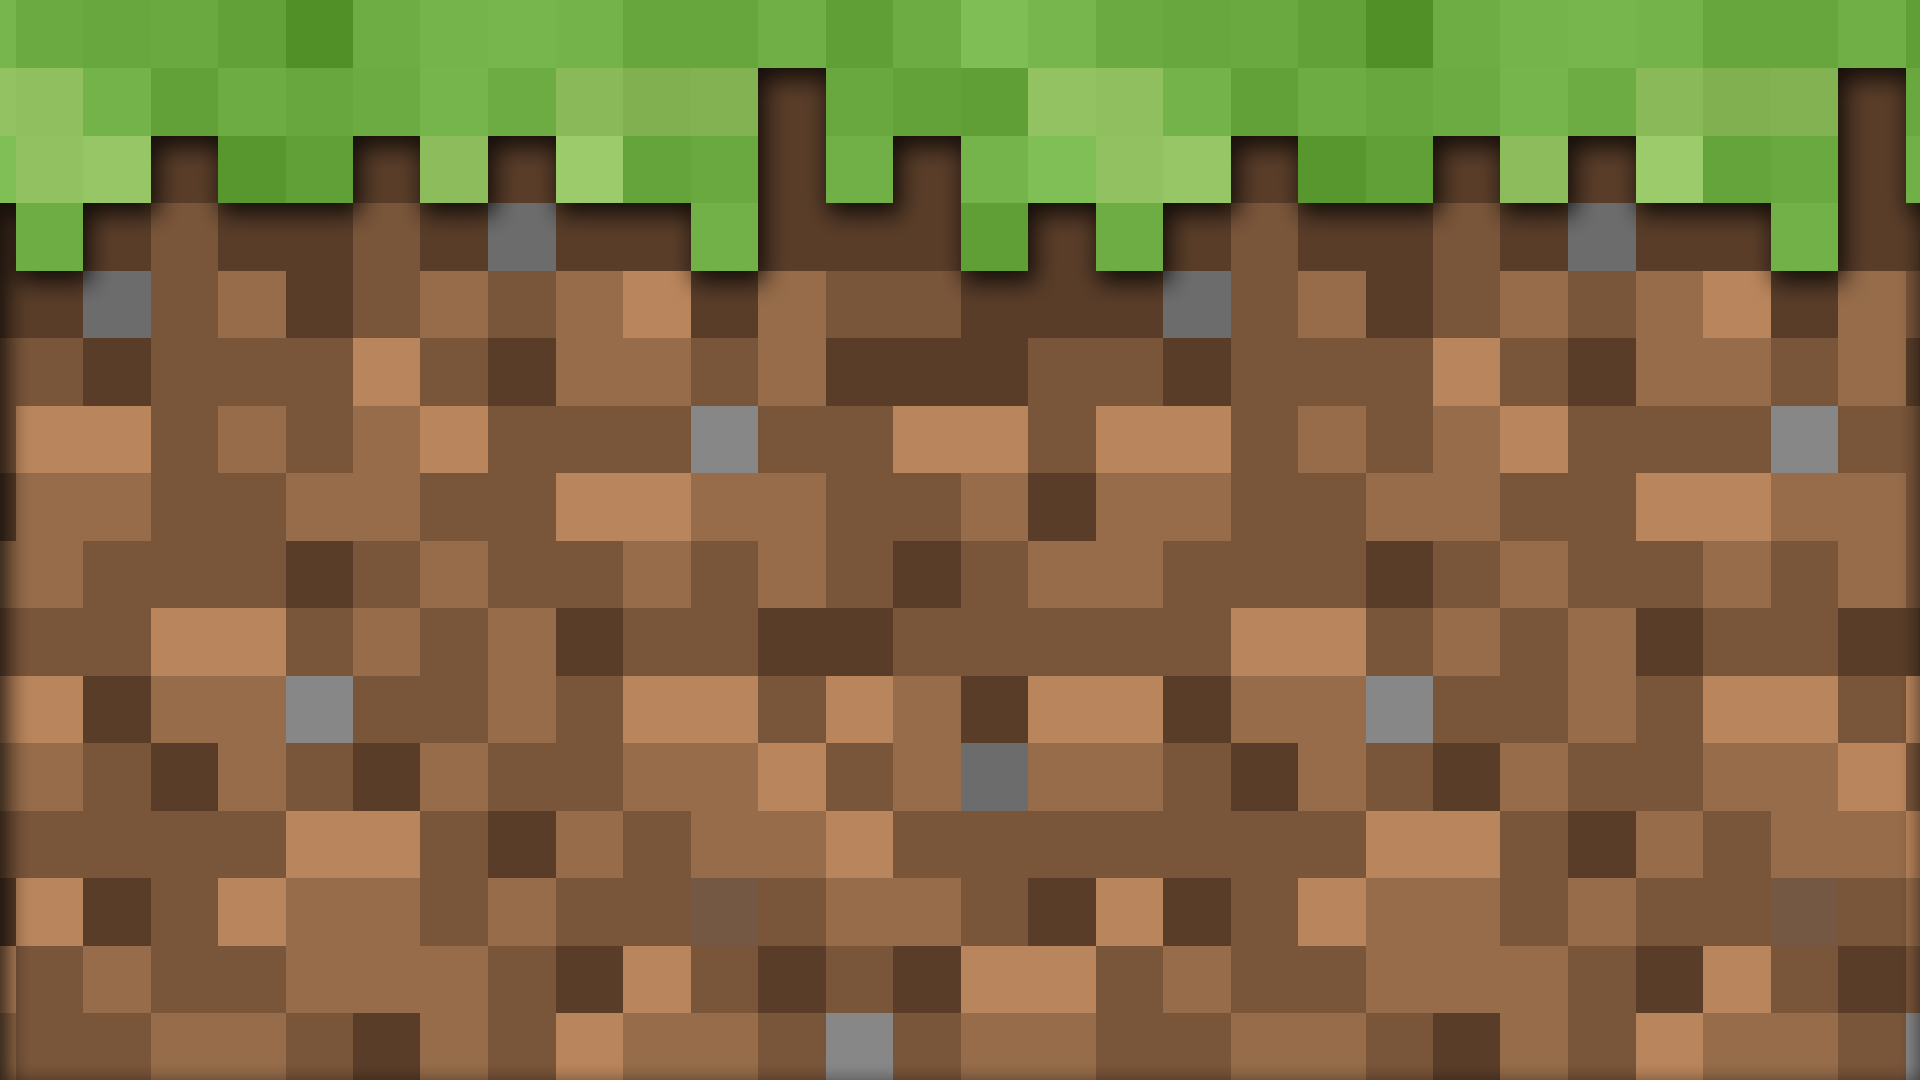 1080p Minecraft Grass Wallpaper By Iwithered On Deviantart